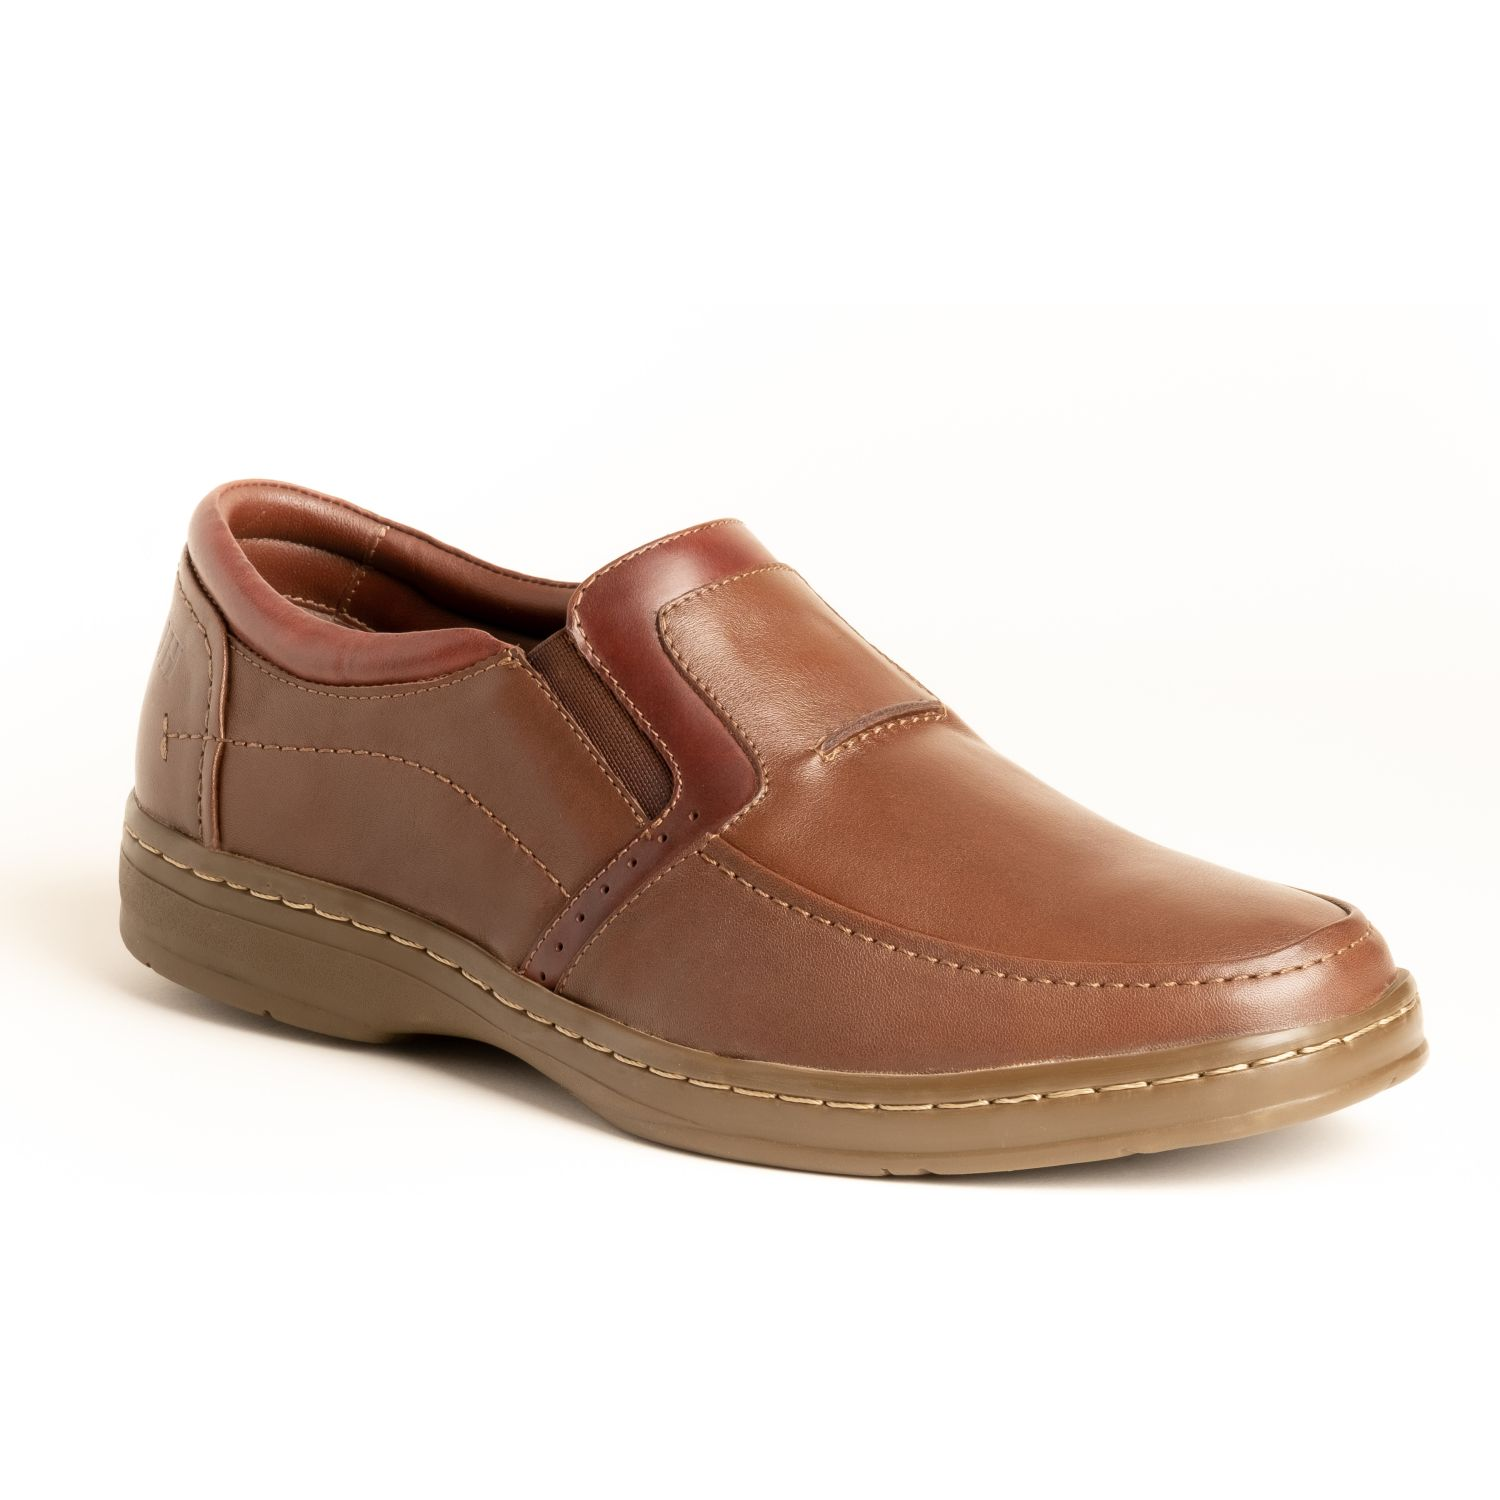 JOHN HOLDEN GAFAR Marron Oxfords